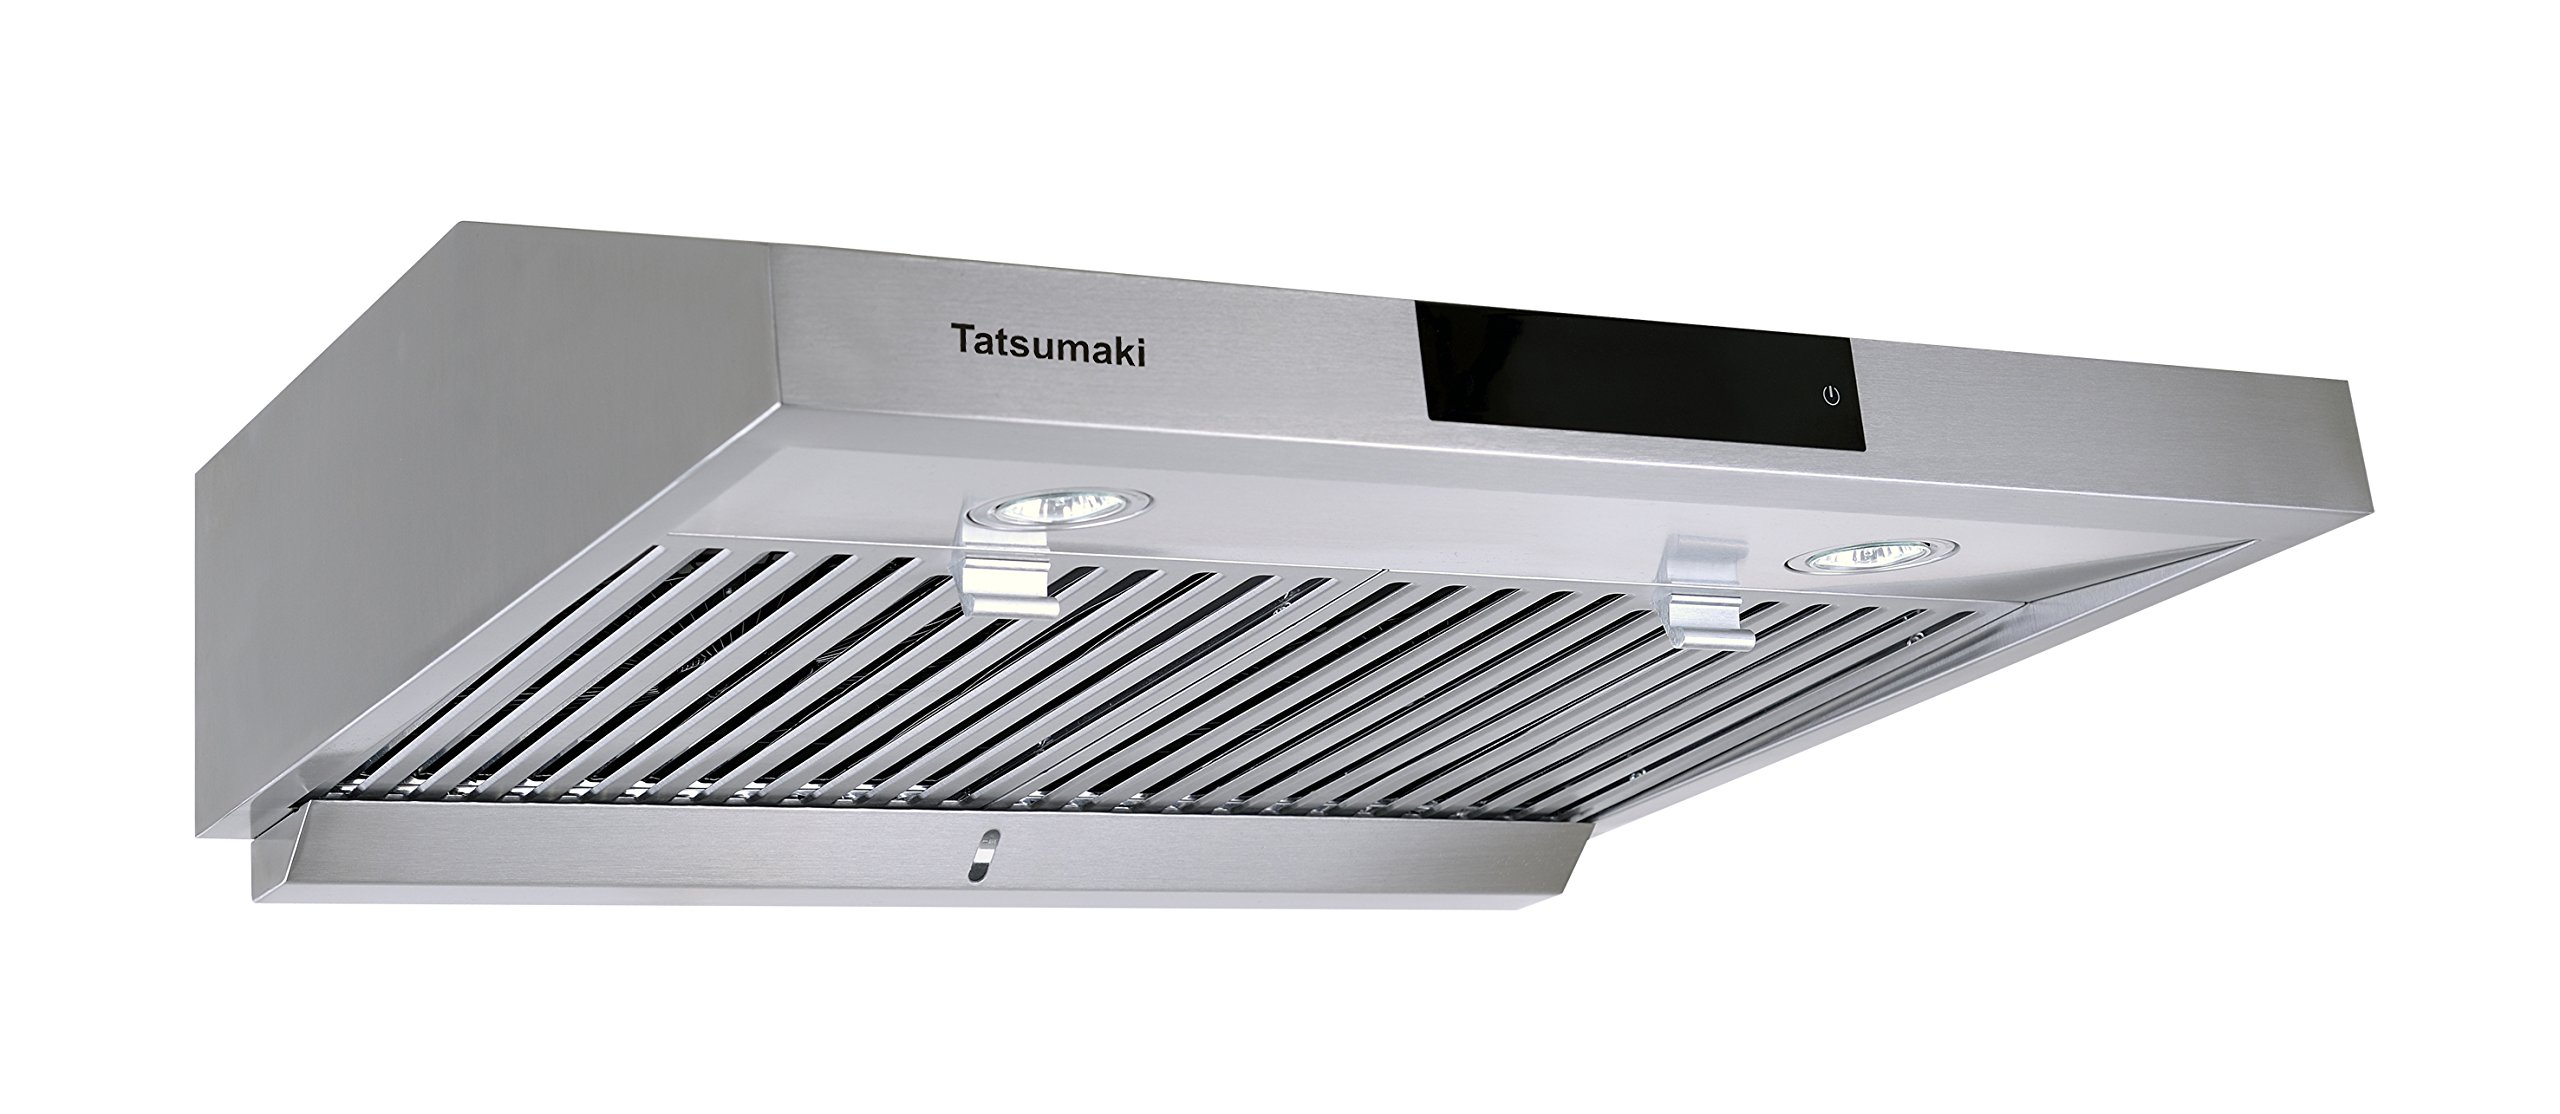 Tatsumaki 30'' TA-S18 Contemporary Design Range Hood w/ 860 CFM, Touch Screen, Baffle Filters